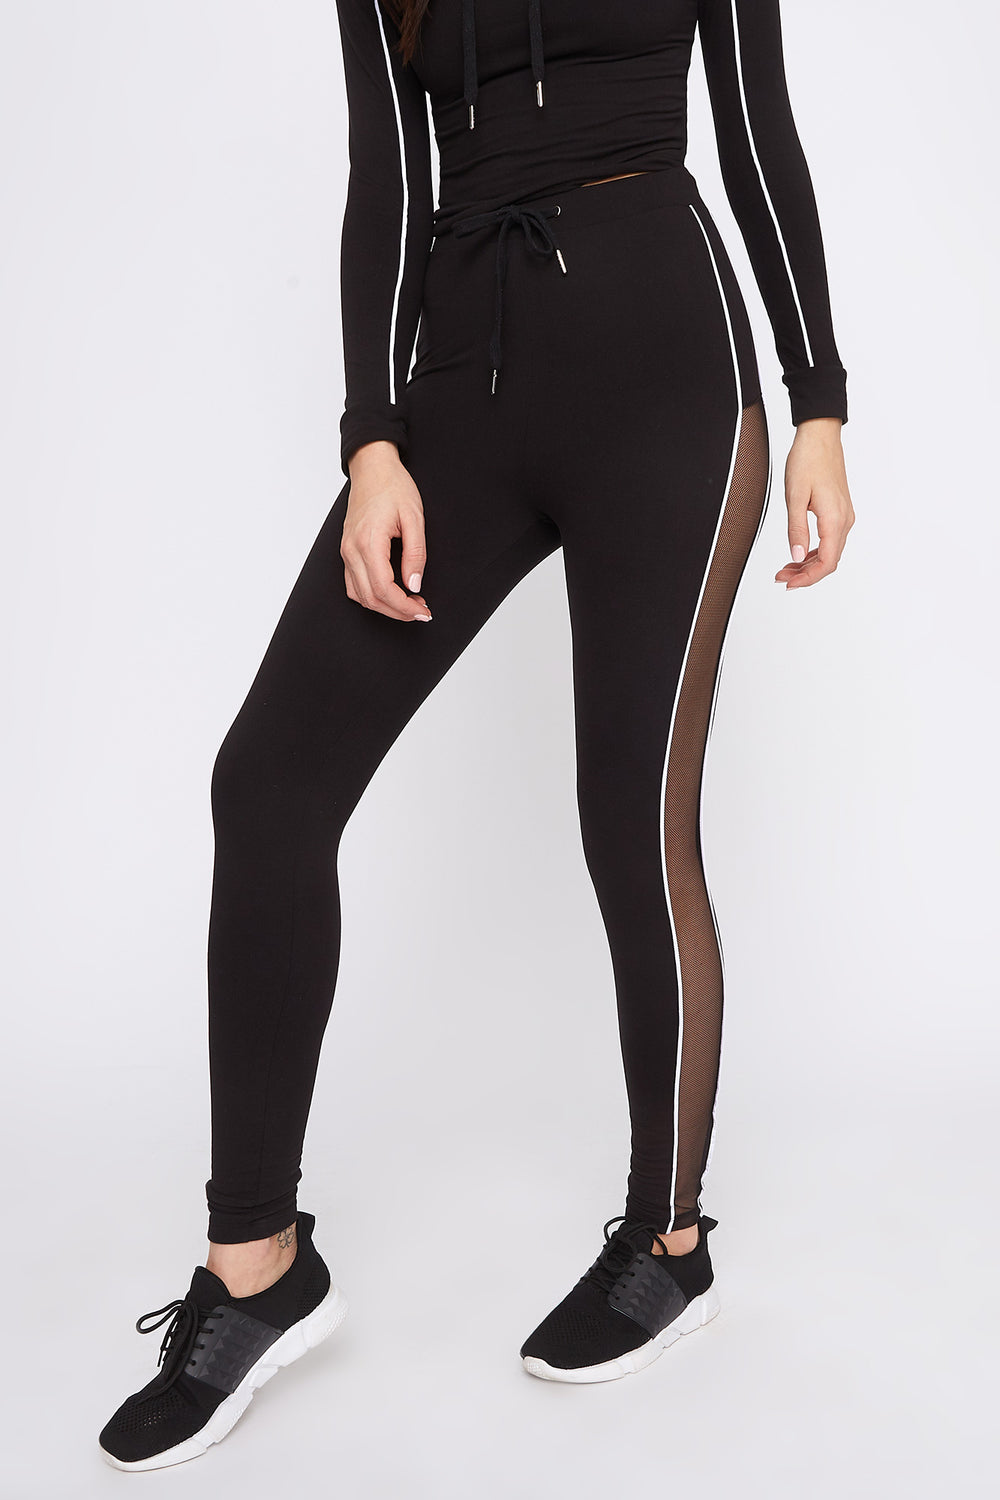 Fleece Mesh Cut-Out Legging Black